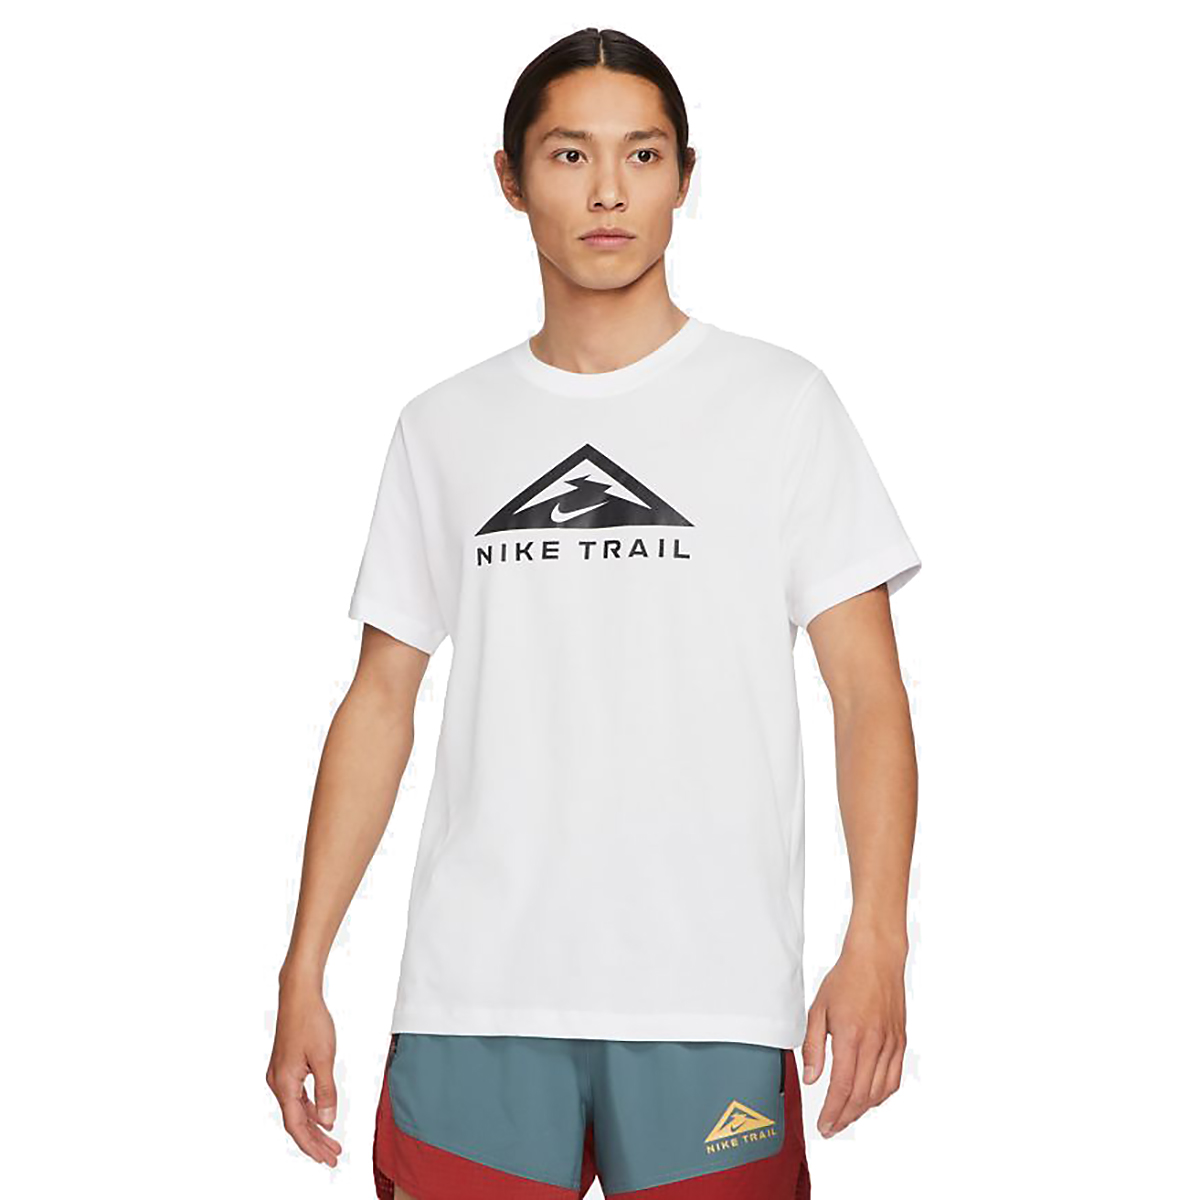 Men's Nike Dri-FIT Short-Sleeve Trail Running T-Shirt - Color: White - Size: XS, White, large, image 1